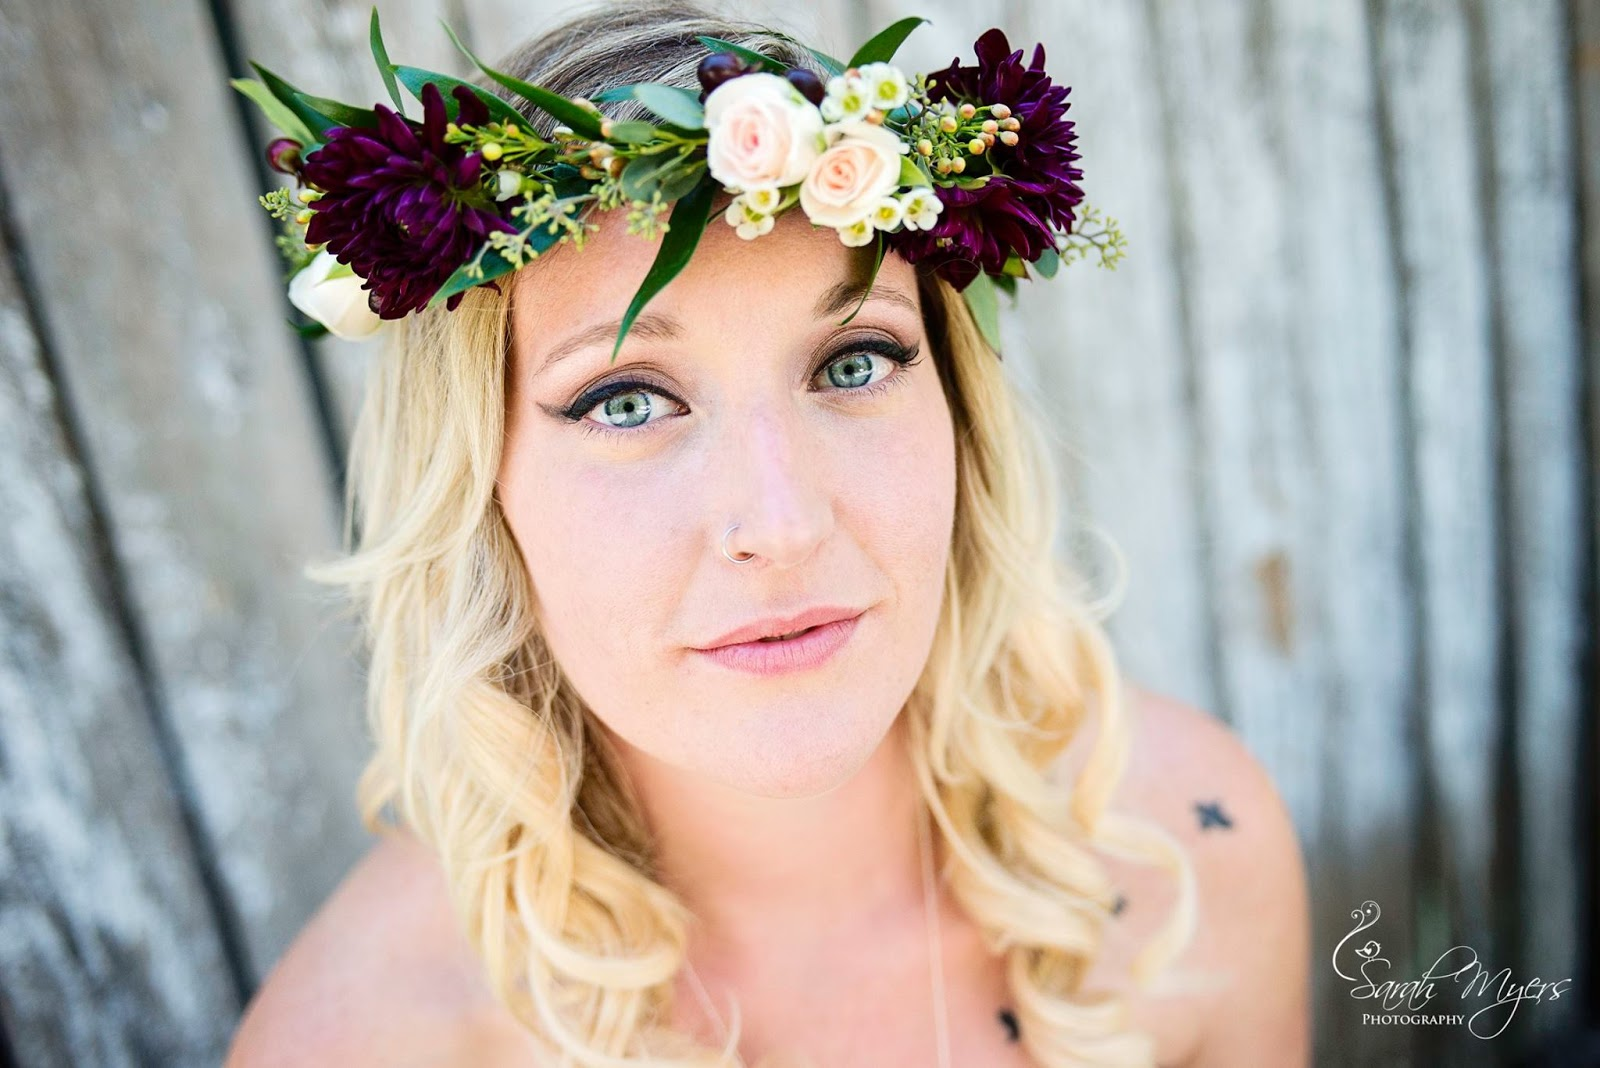 Lisa foster floral design flower crowns each flower crown created at the shop is custom and handmade each designer places each flower individually to create the perfect crown for you izmirmasajfo Gallery